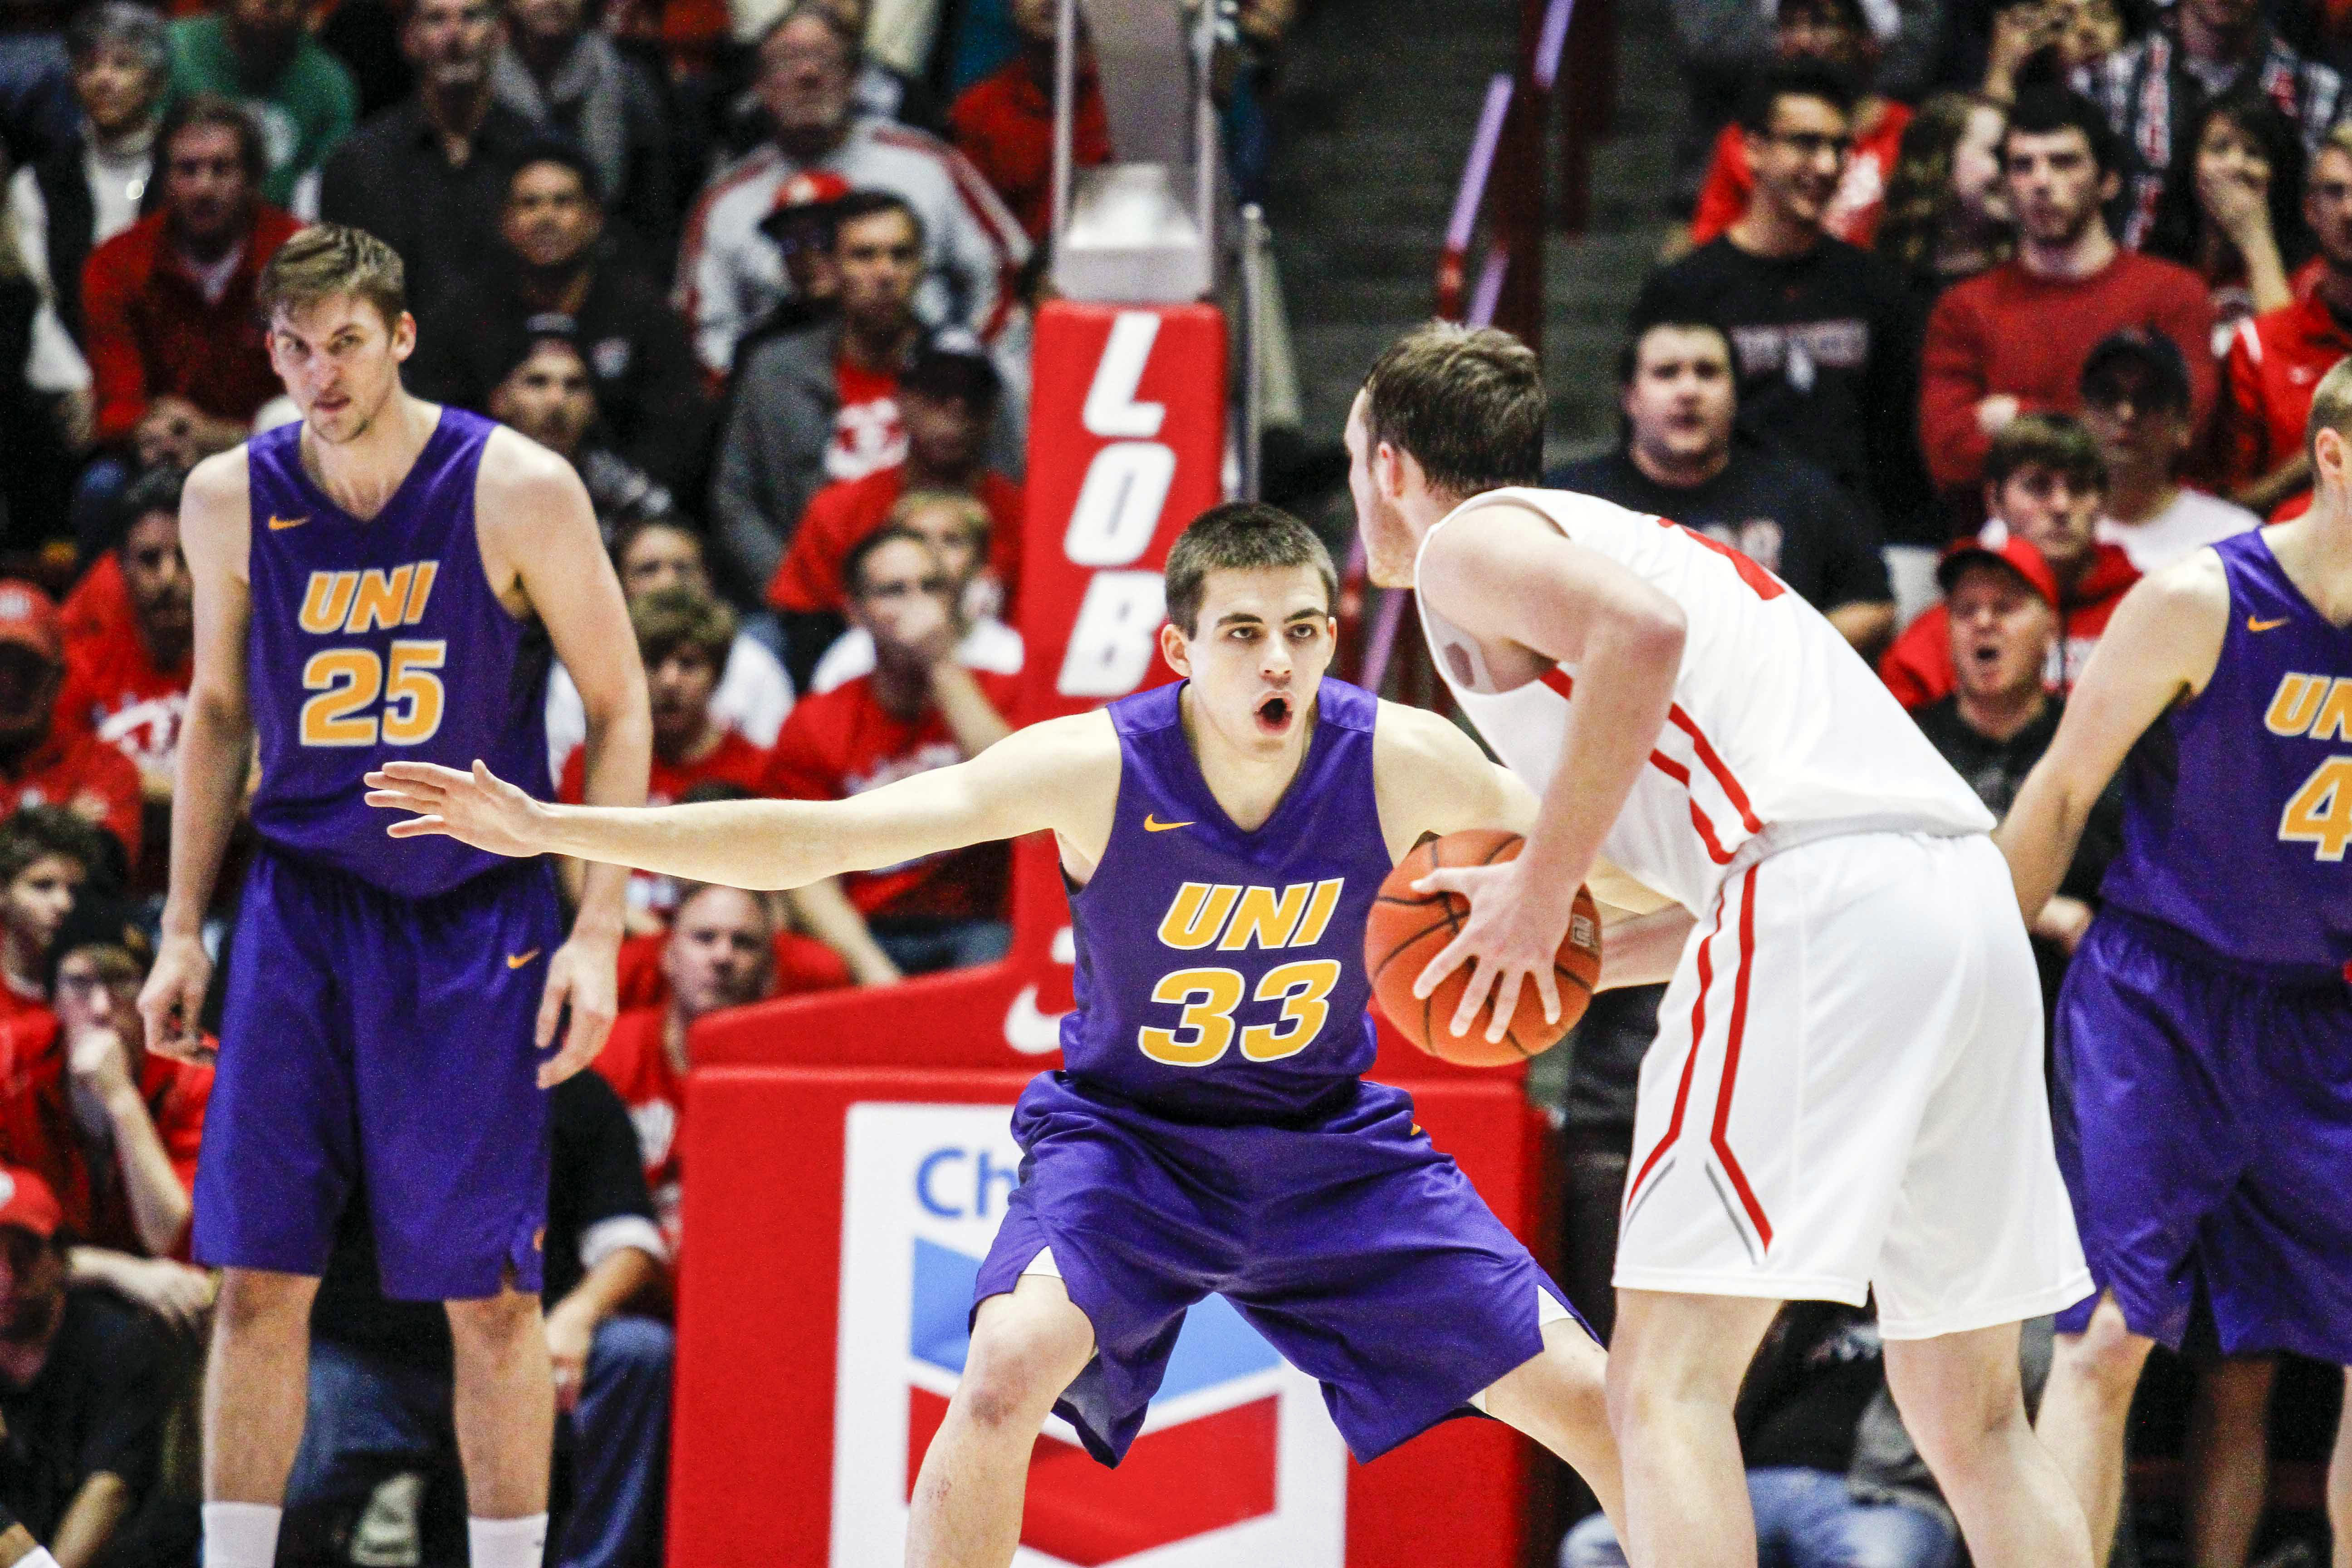 Northern Iowa's Wyatt Lohaus (33) guards New Mexico's Cullen Neal (1) during the first half an NCAA college basketball game, Saturday, Dec. 12, 2015, in Albuquerque, N.M. (AP Photo/Juan Labreche)